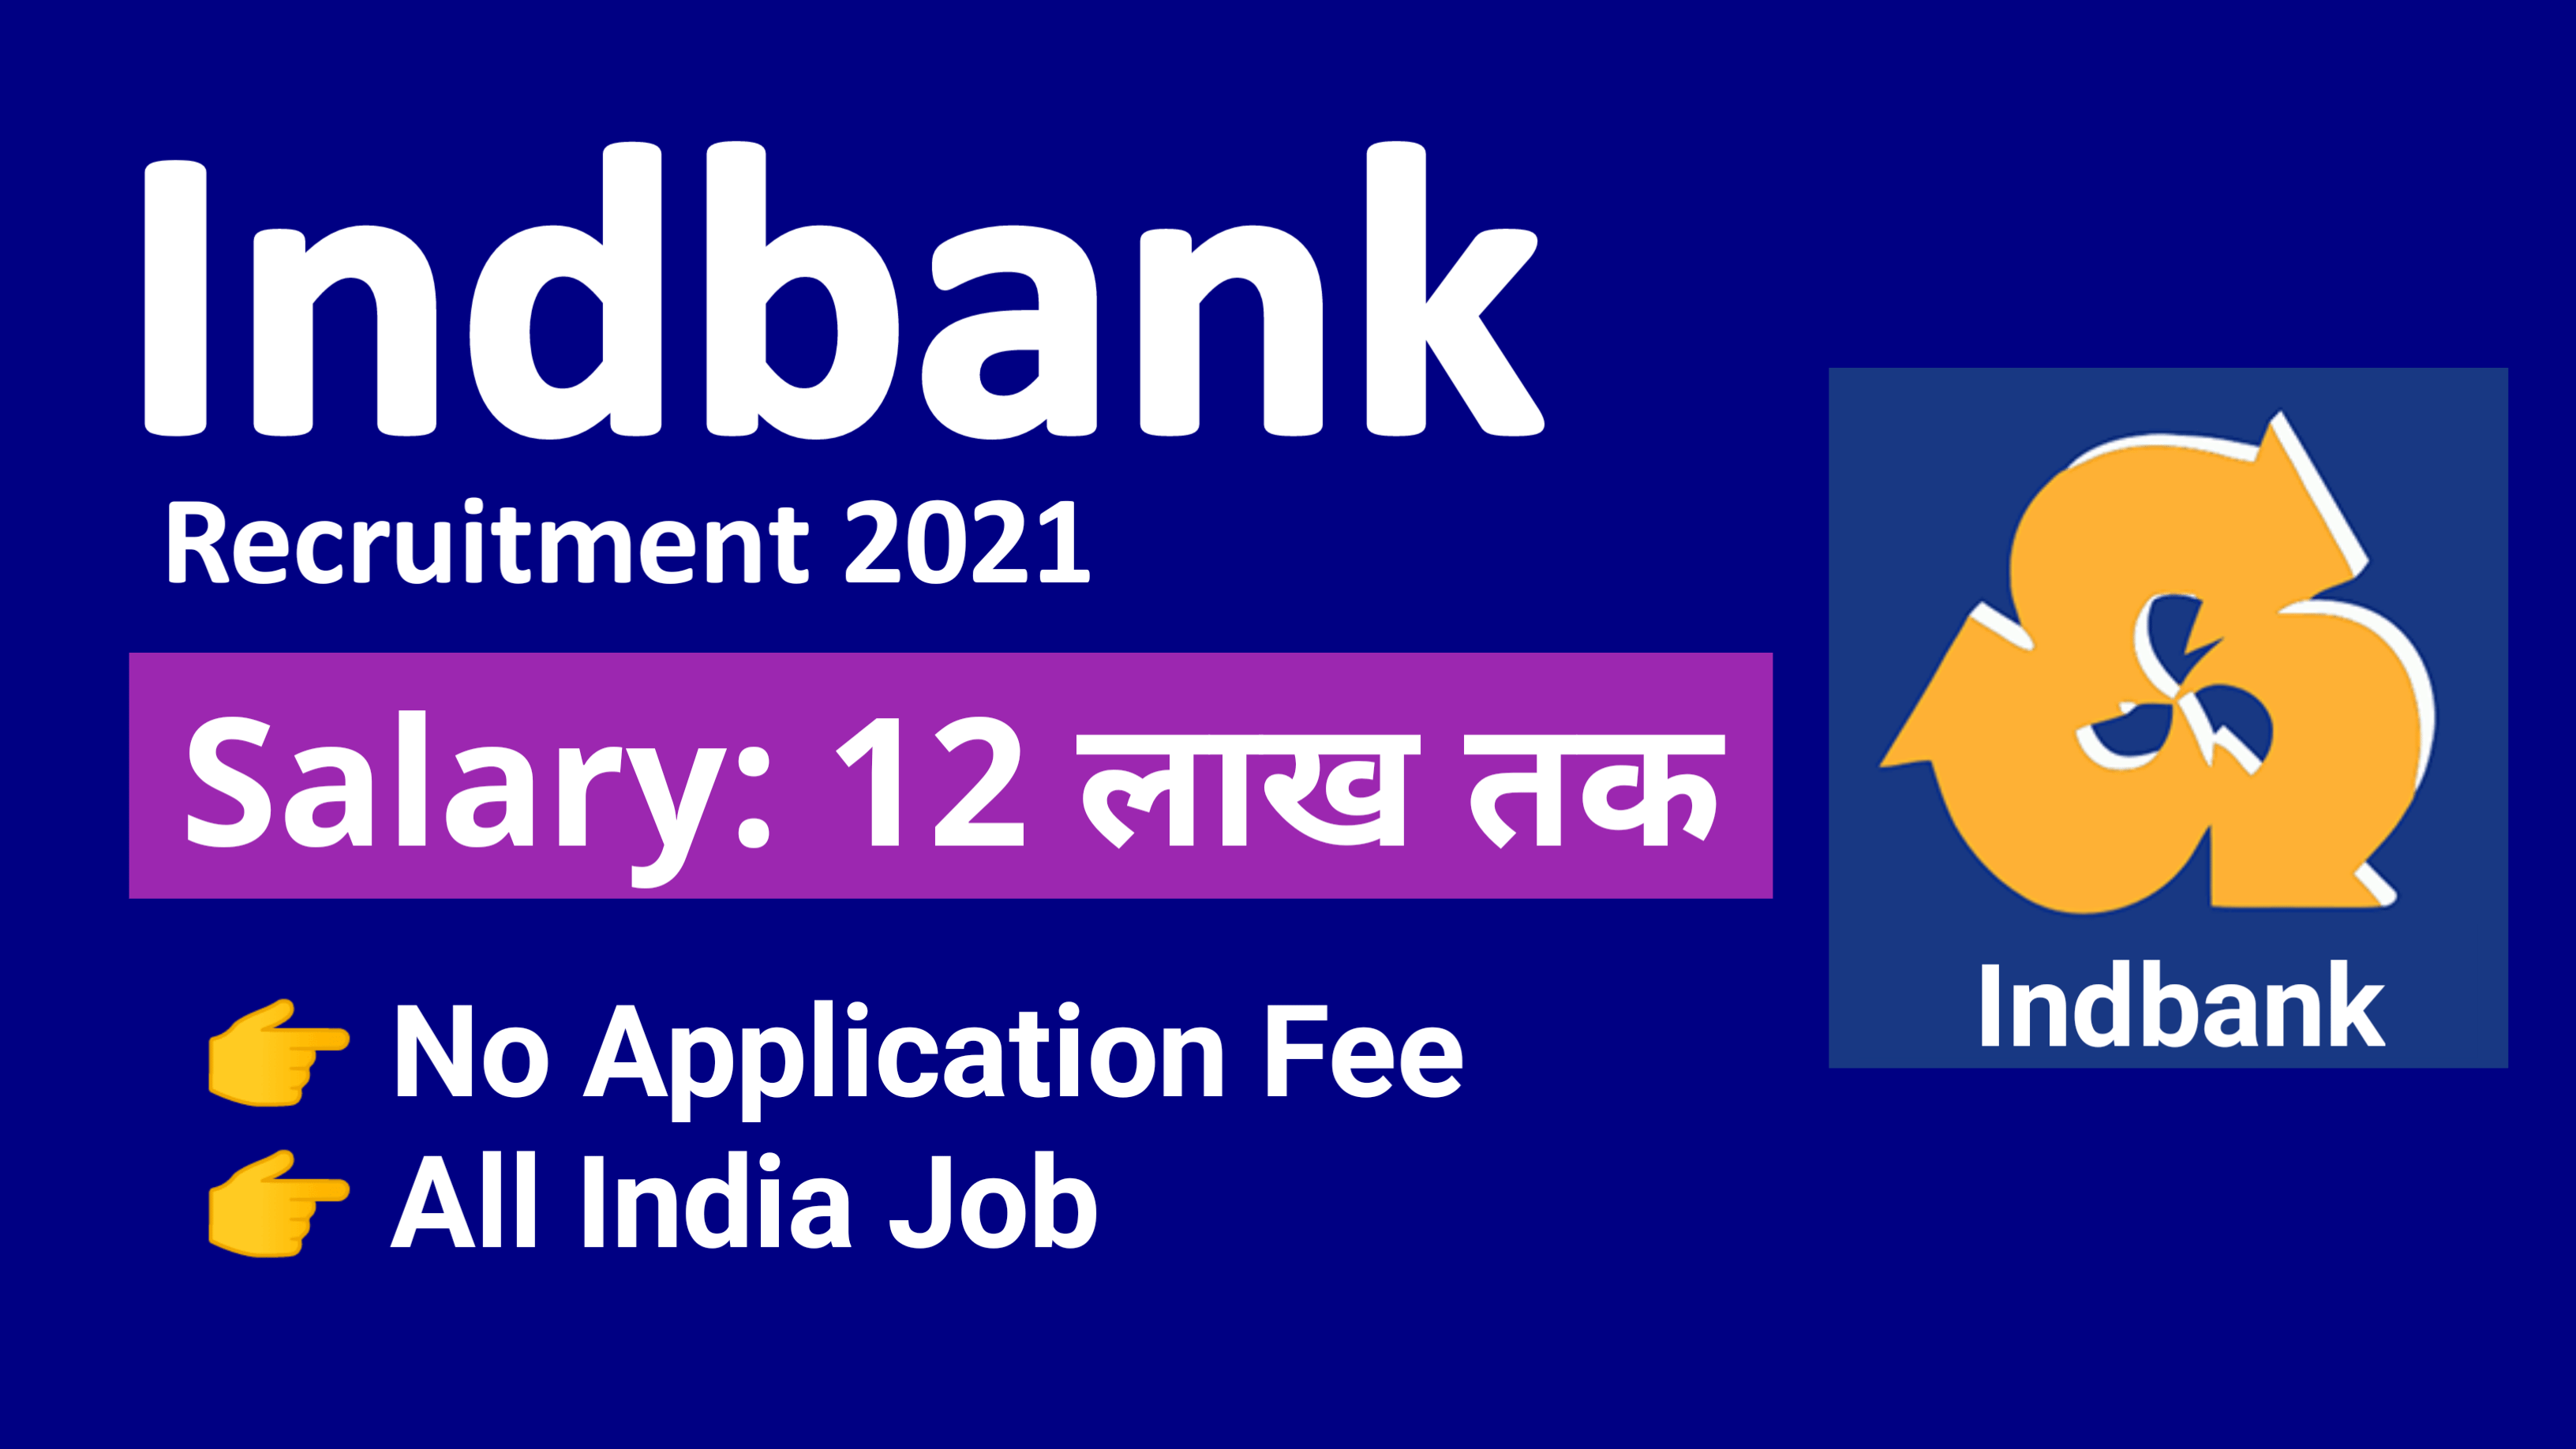 Indbank Recruitment 2021